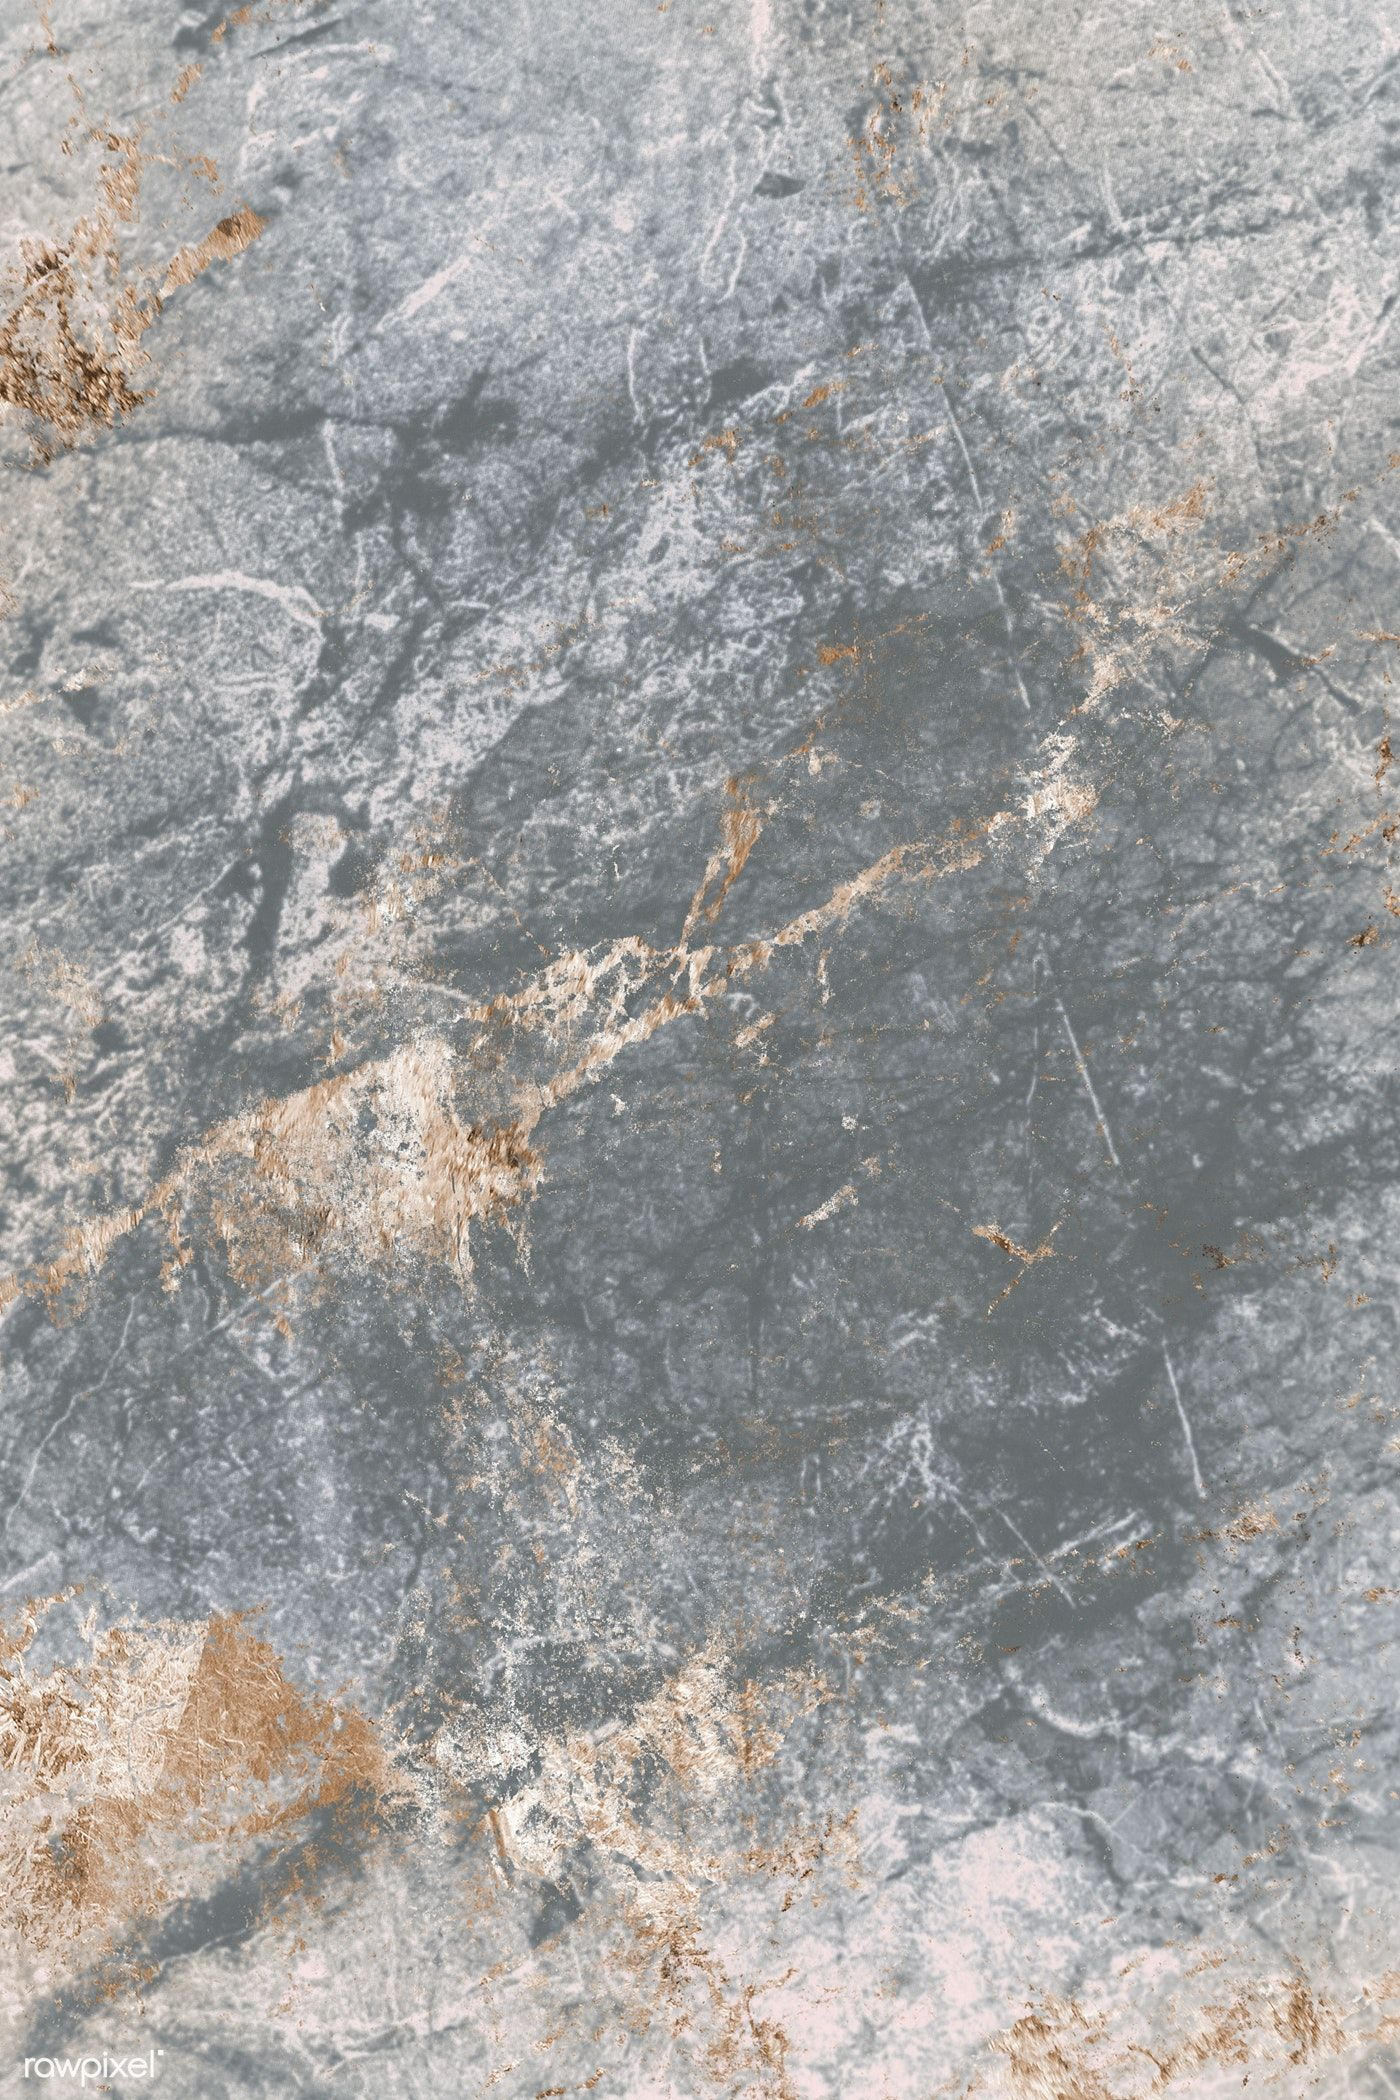 Gray And Brown Marble Textured Background Free Image By Rawpixel Com Eyeeyeview In 2020 Textured Background Marble Texture Gray Background